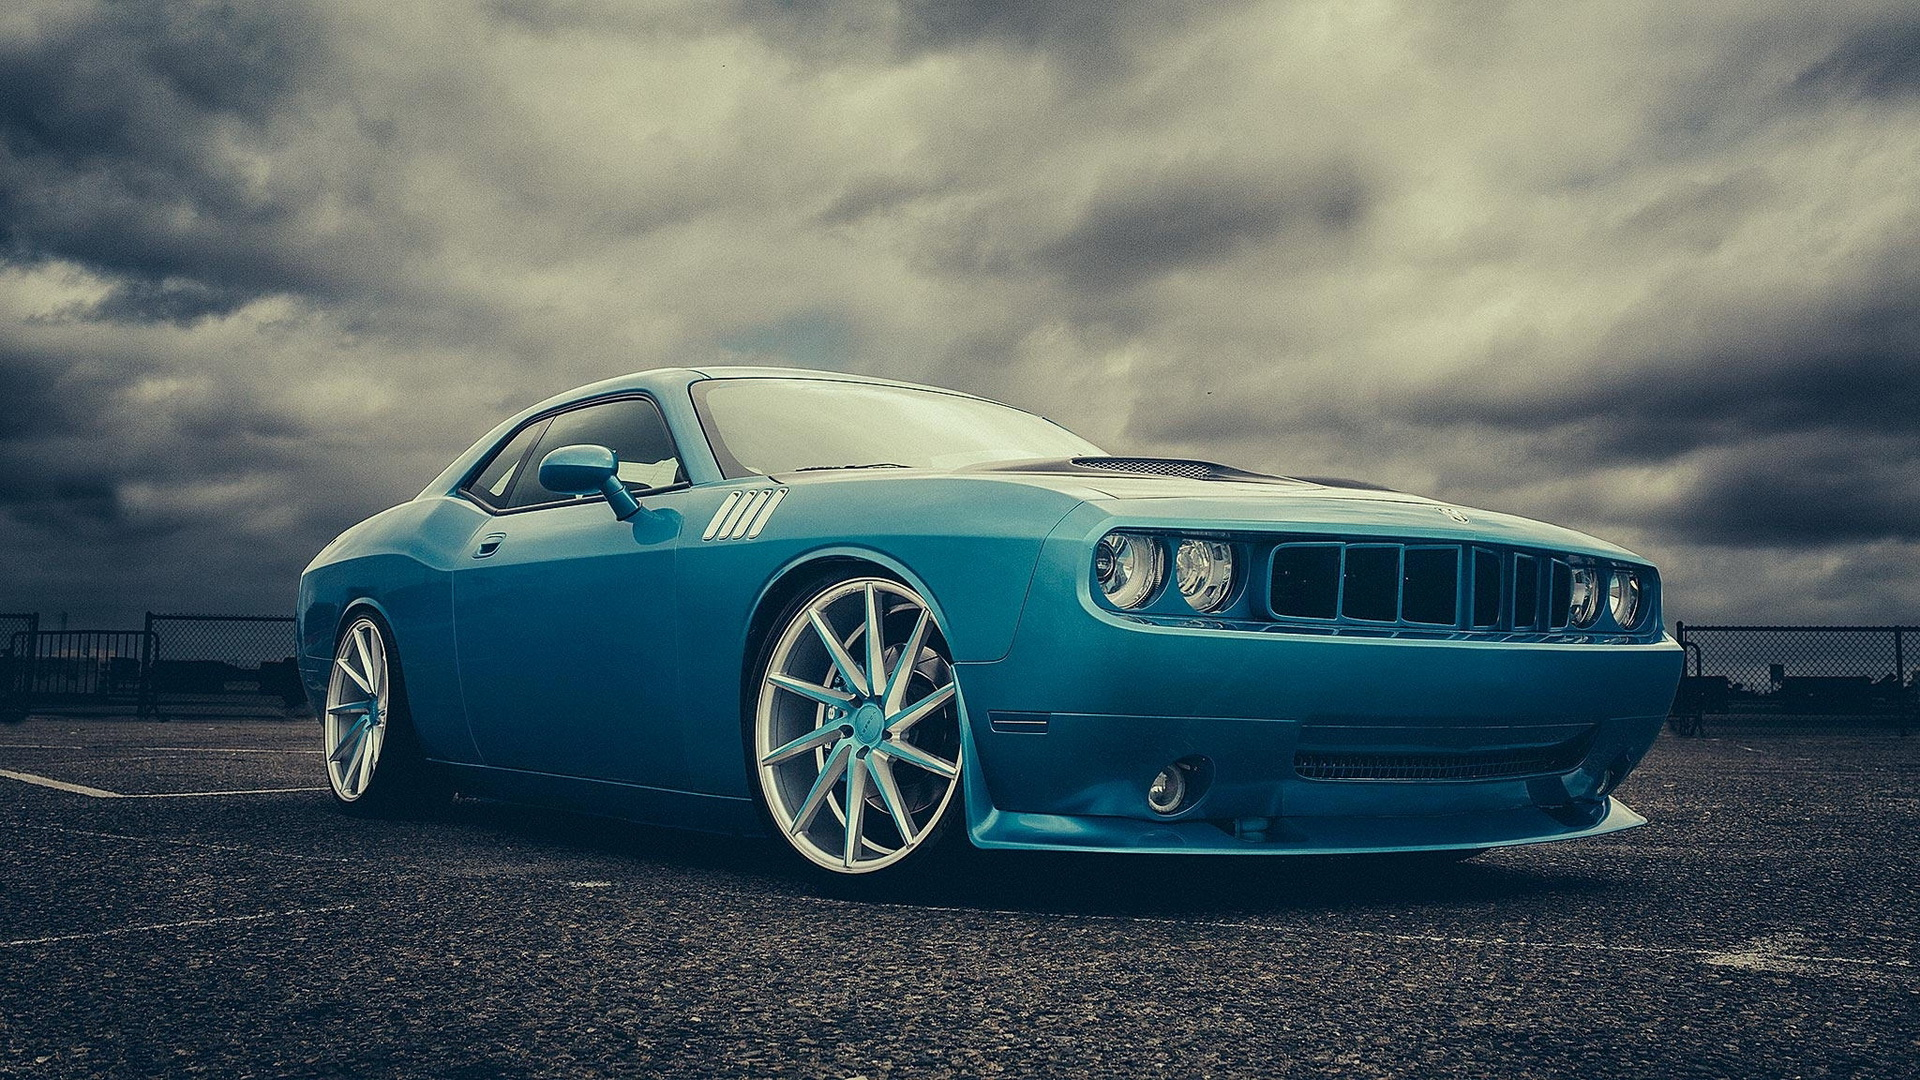 Classic Muscle Car Wallpapers Hd 1680x1050 Dodge Challenger Hd Wallpaper Background Image